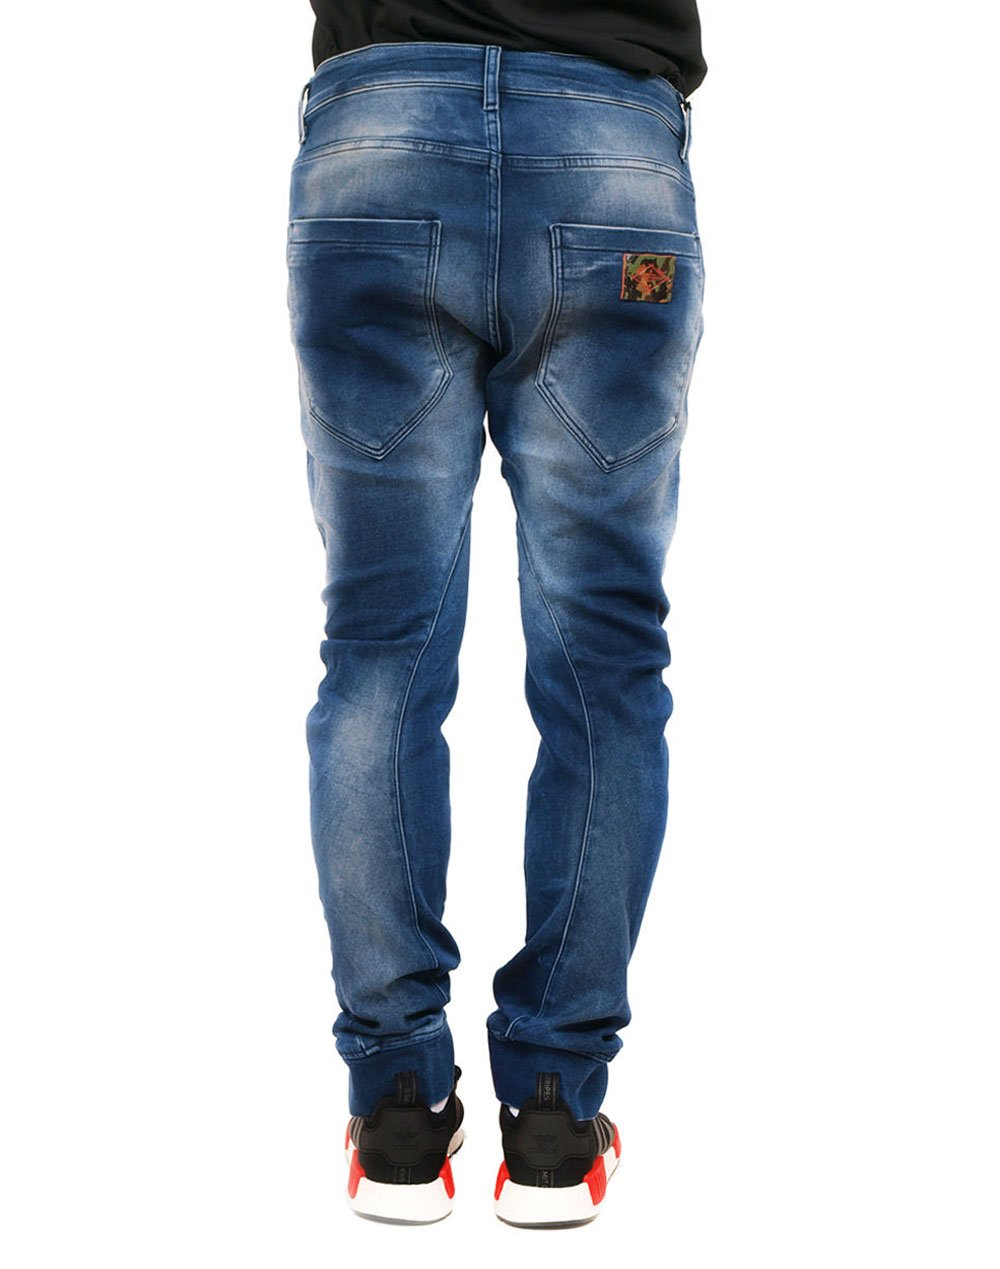 COVER WEST 9560 DENIM